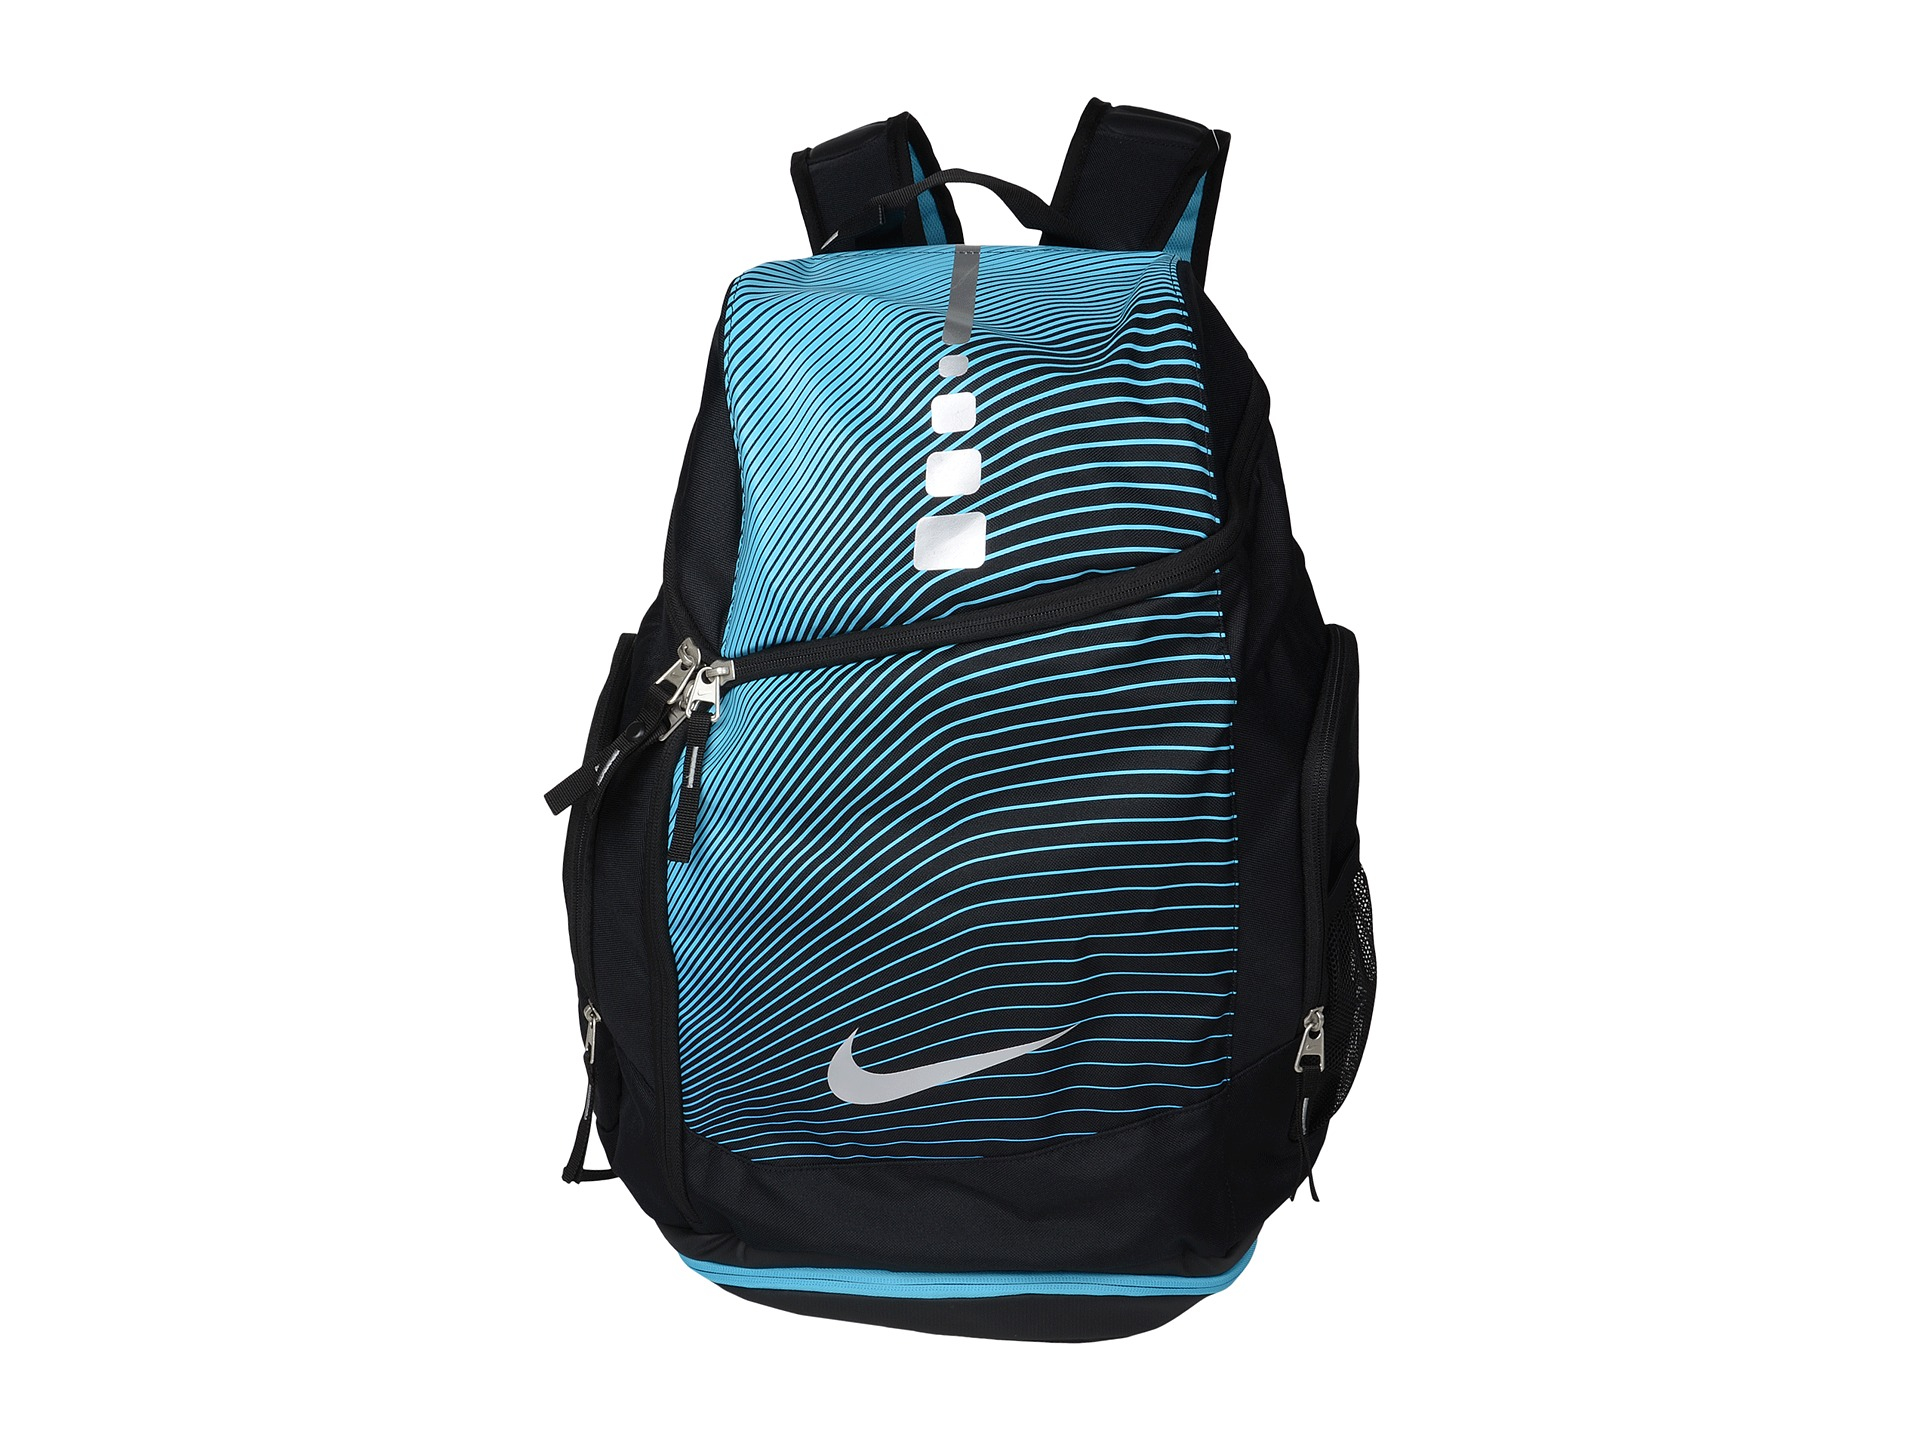 70bb7b41f0f3 Lyst - Nike Hoops Elite Max Air Backpack Gr in Blue for Men